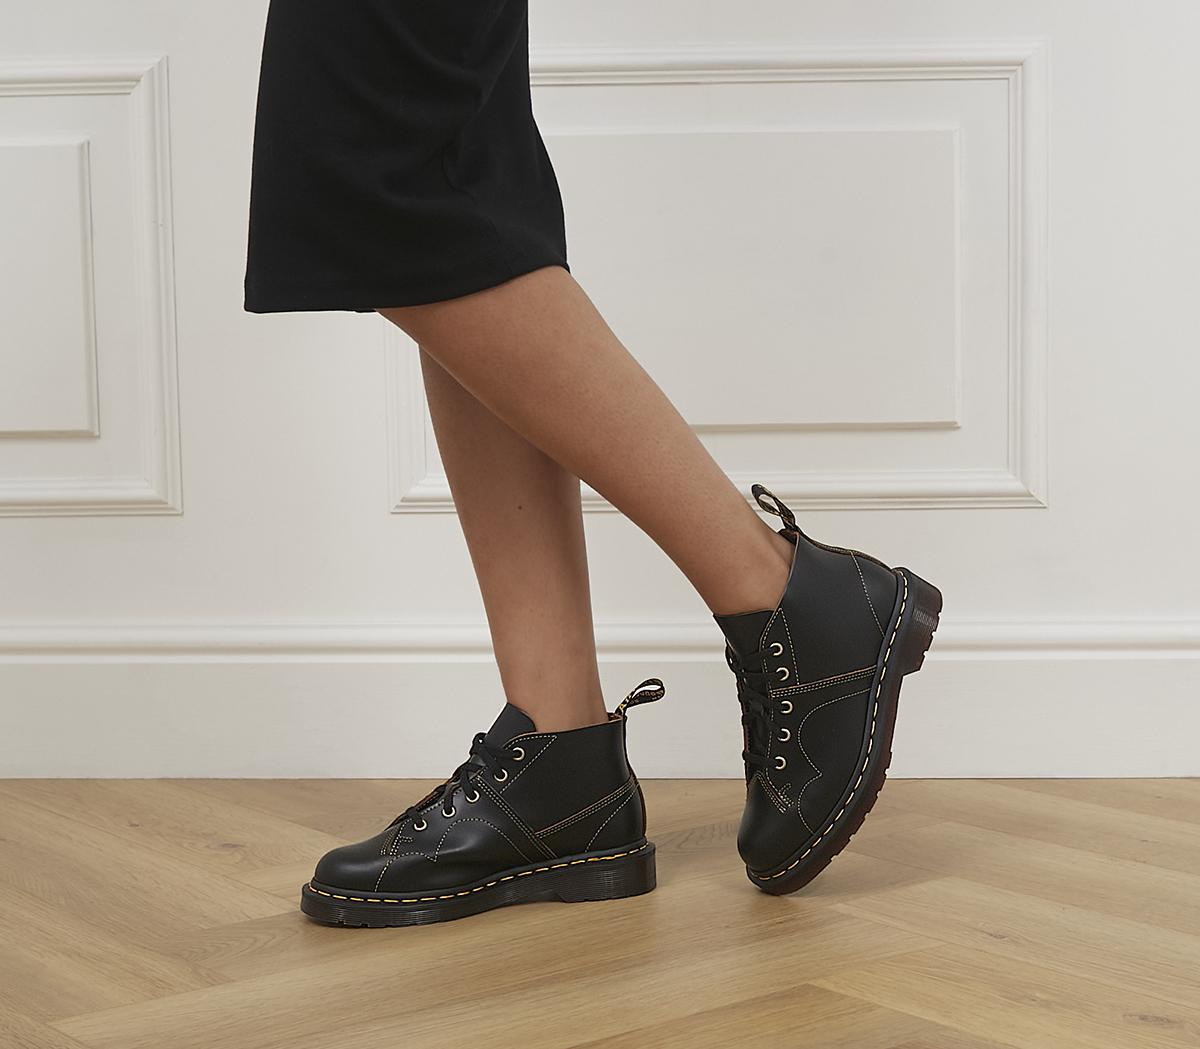 Fragrante tubercolosi audacia  Dr. Martens Church 5 Eye Monkey Boots Black Vintage Smooth - Ankle Boots